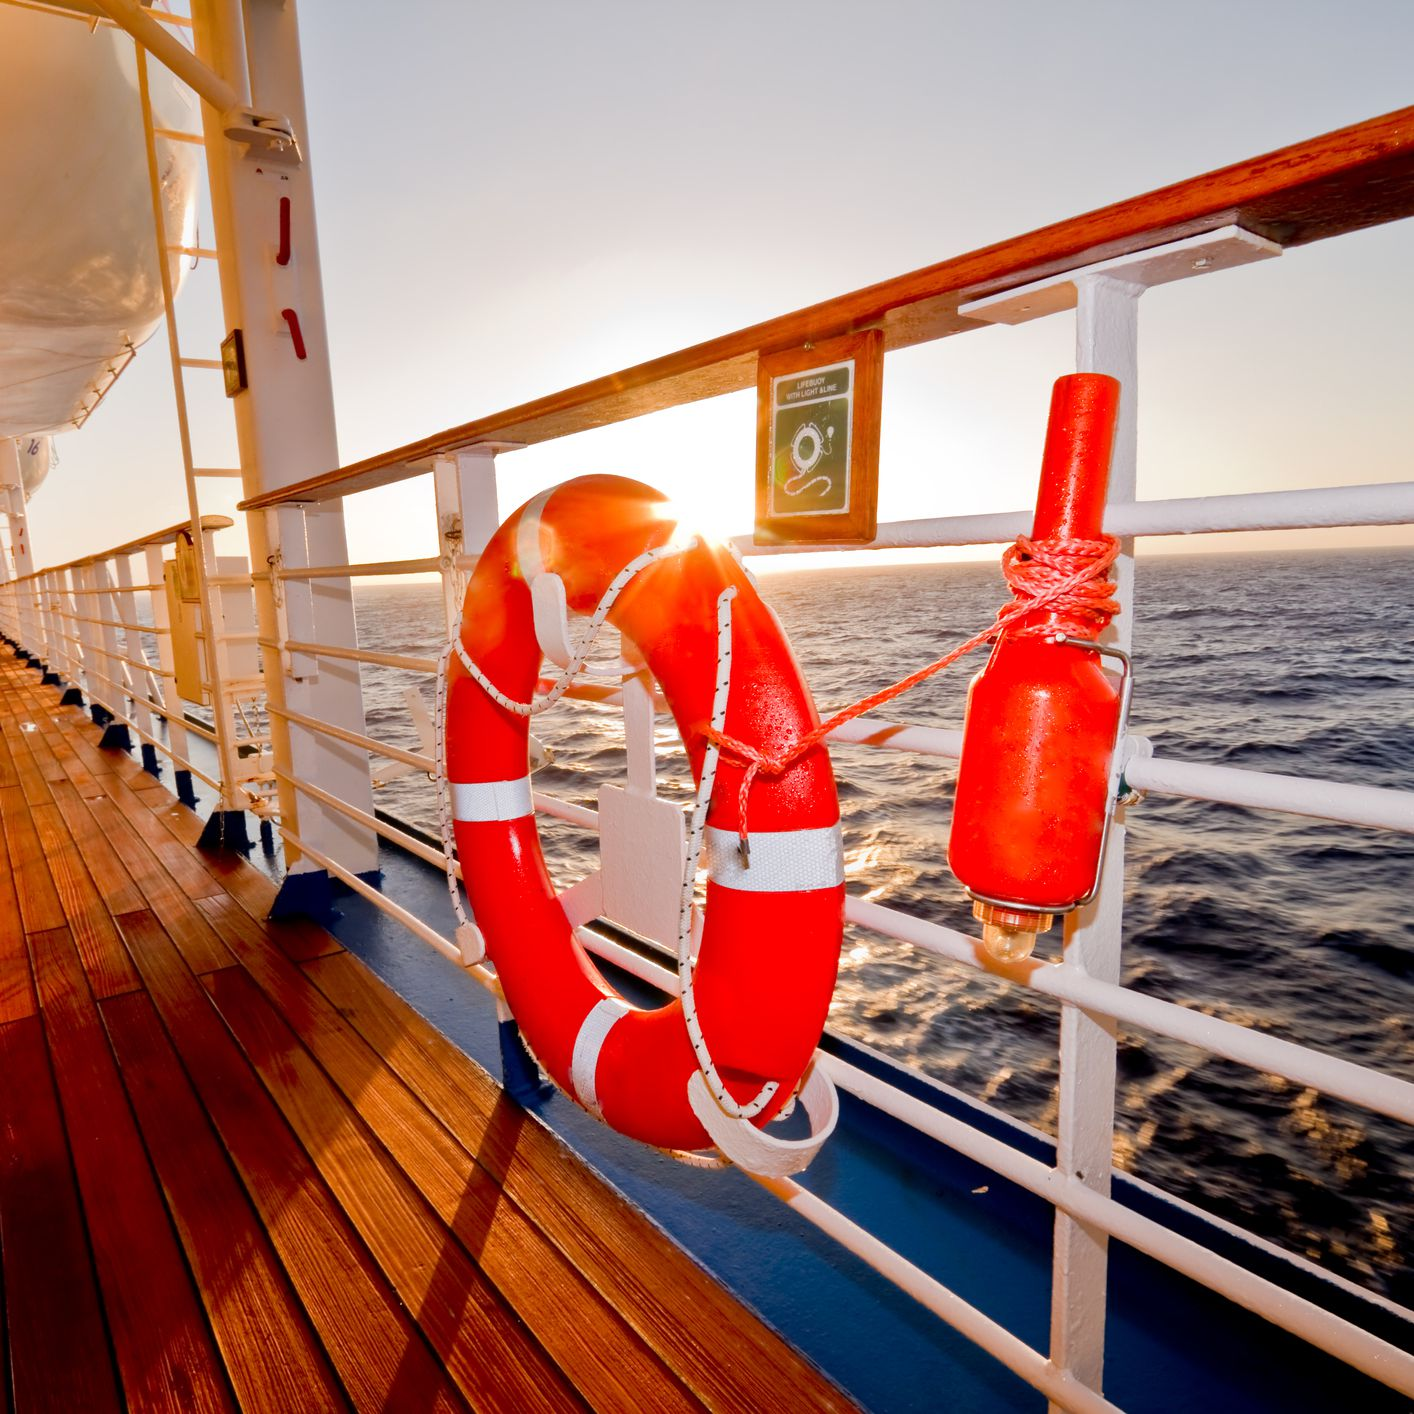 What Should Be in My Boat Safety Kit?